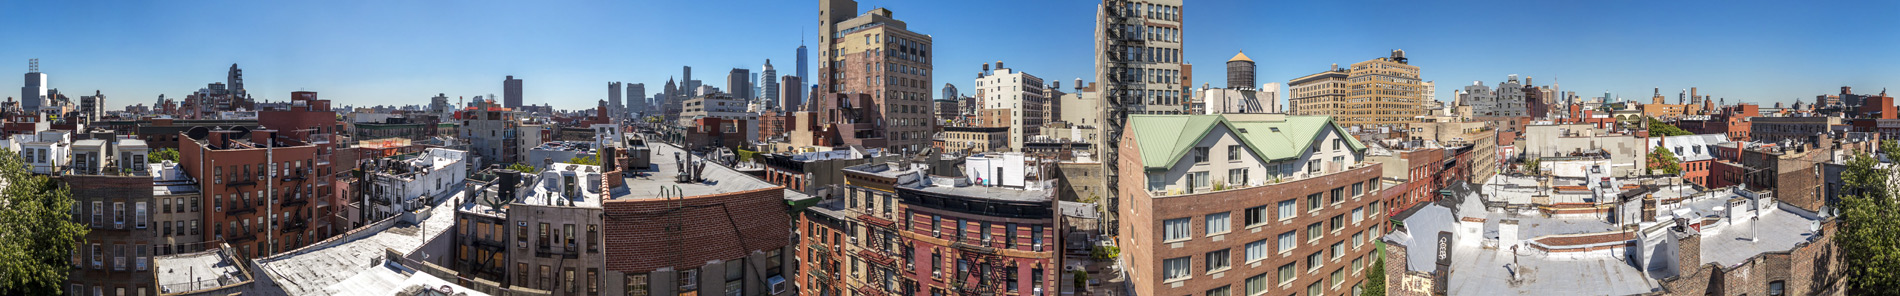 little italy in nyc showing panoramic 360 view using drone aerial copter